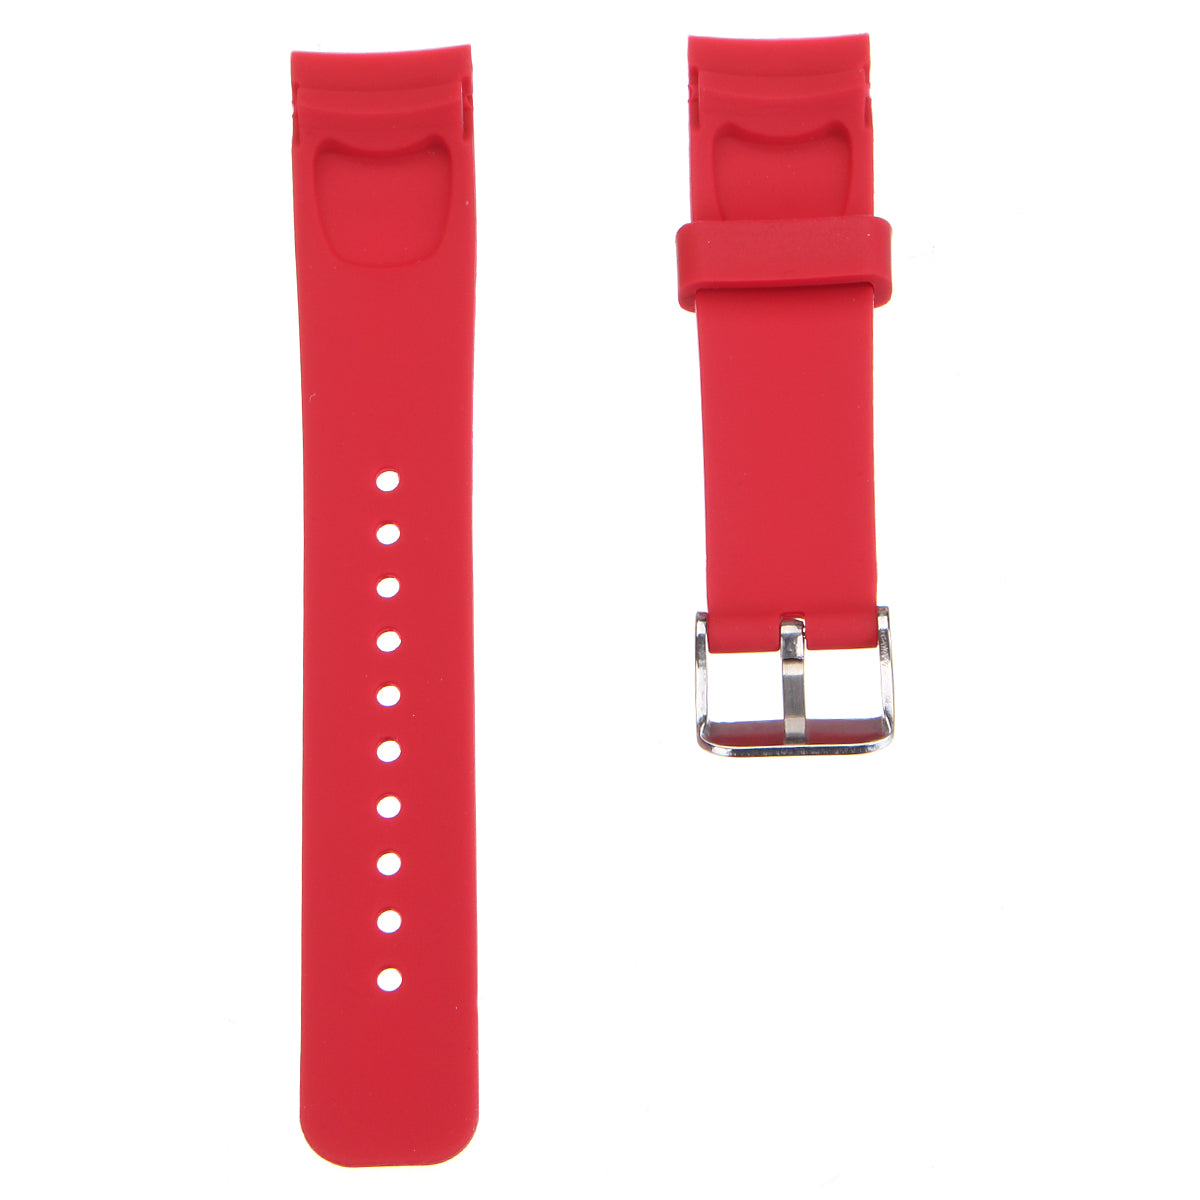 Samsung Galaxy Gear S2 Silicone Smart Watch Band Solid Color Wrist Strap for Samsung Galaxy Gear S2 Classic SM-R732